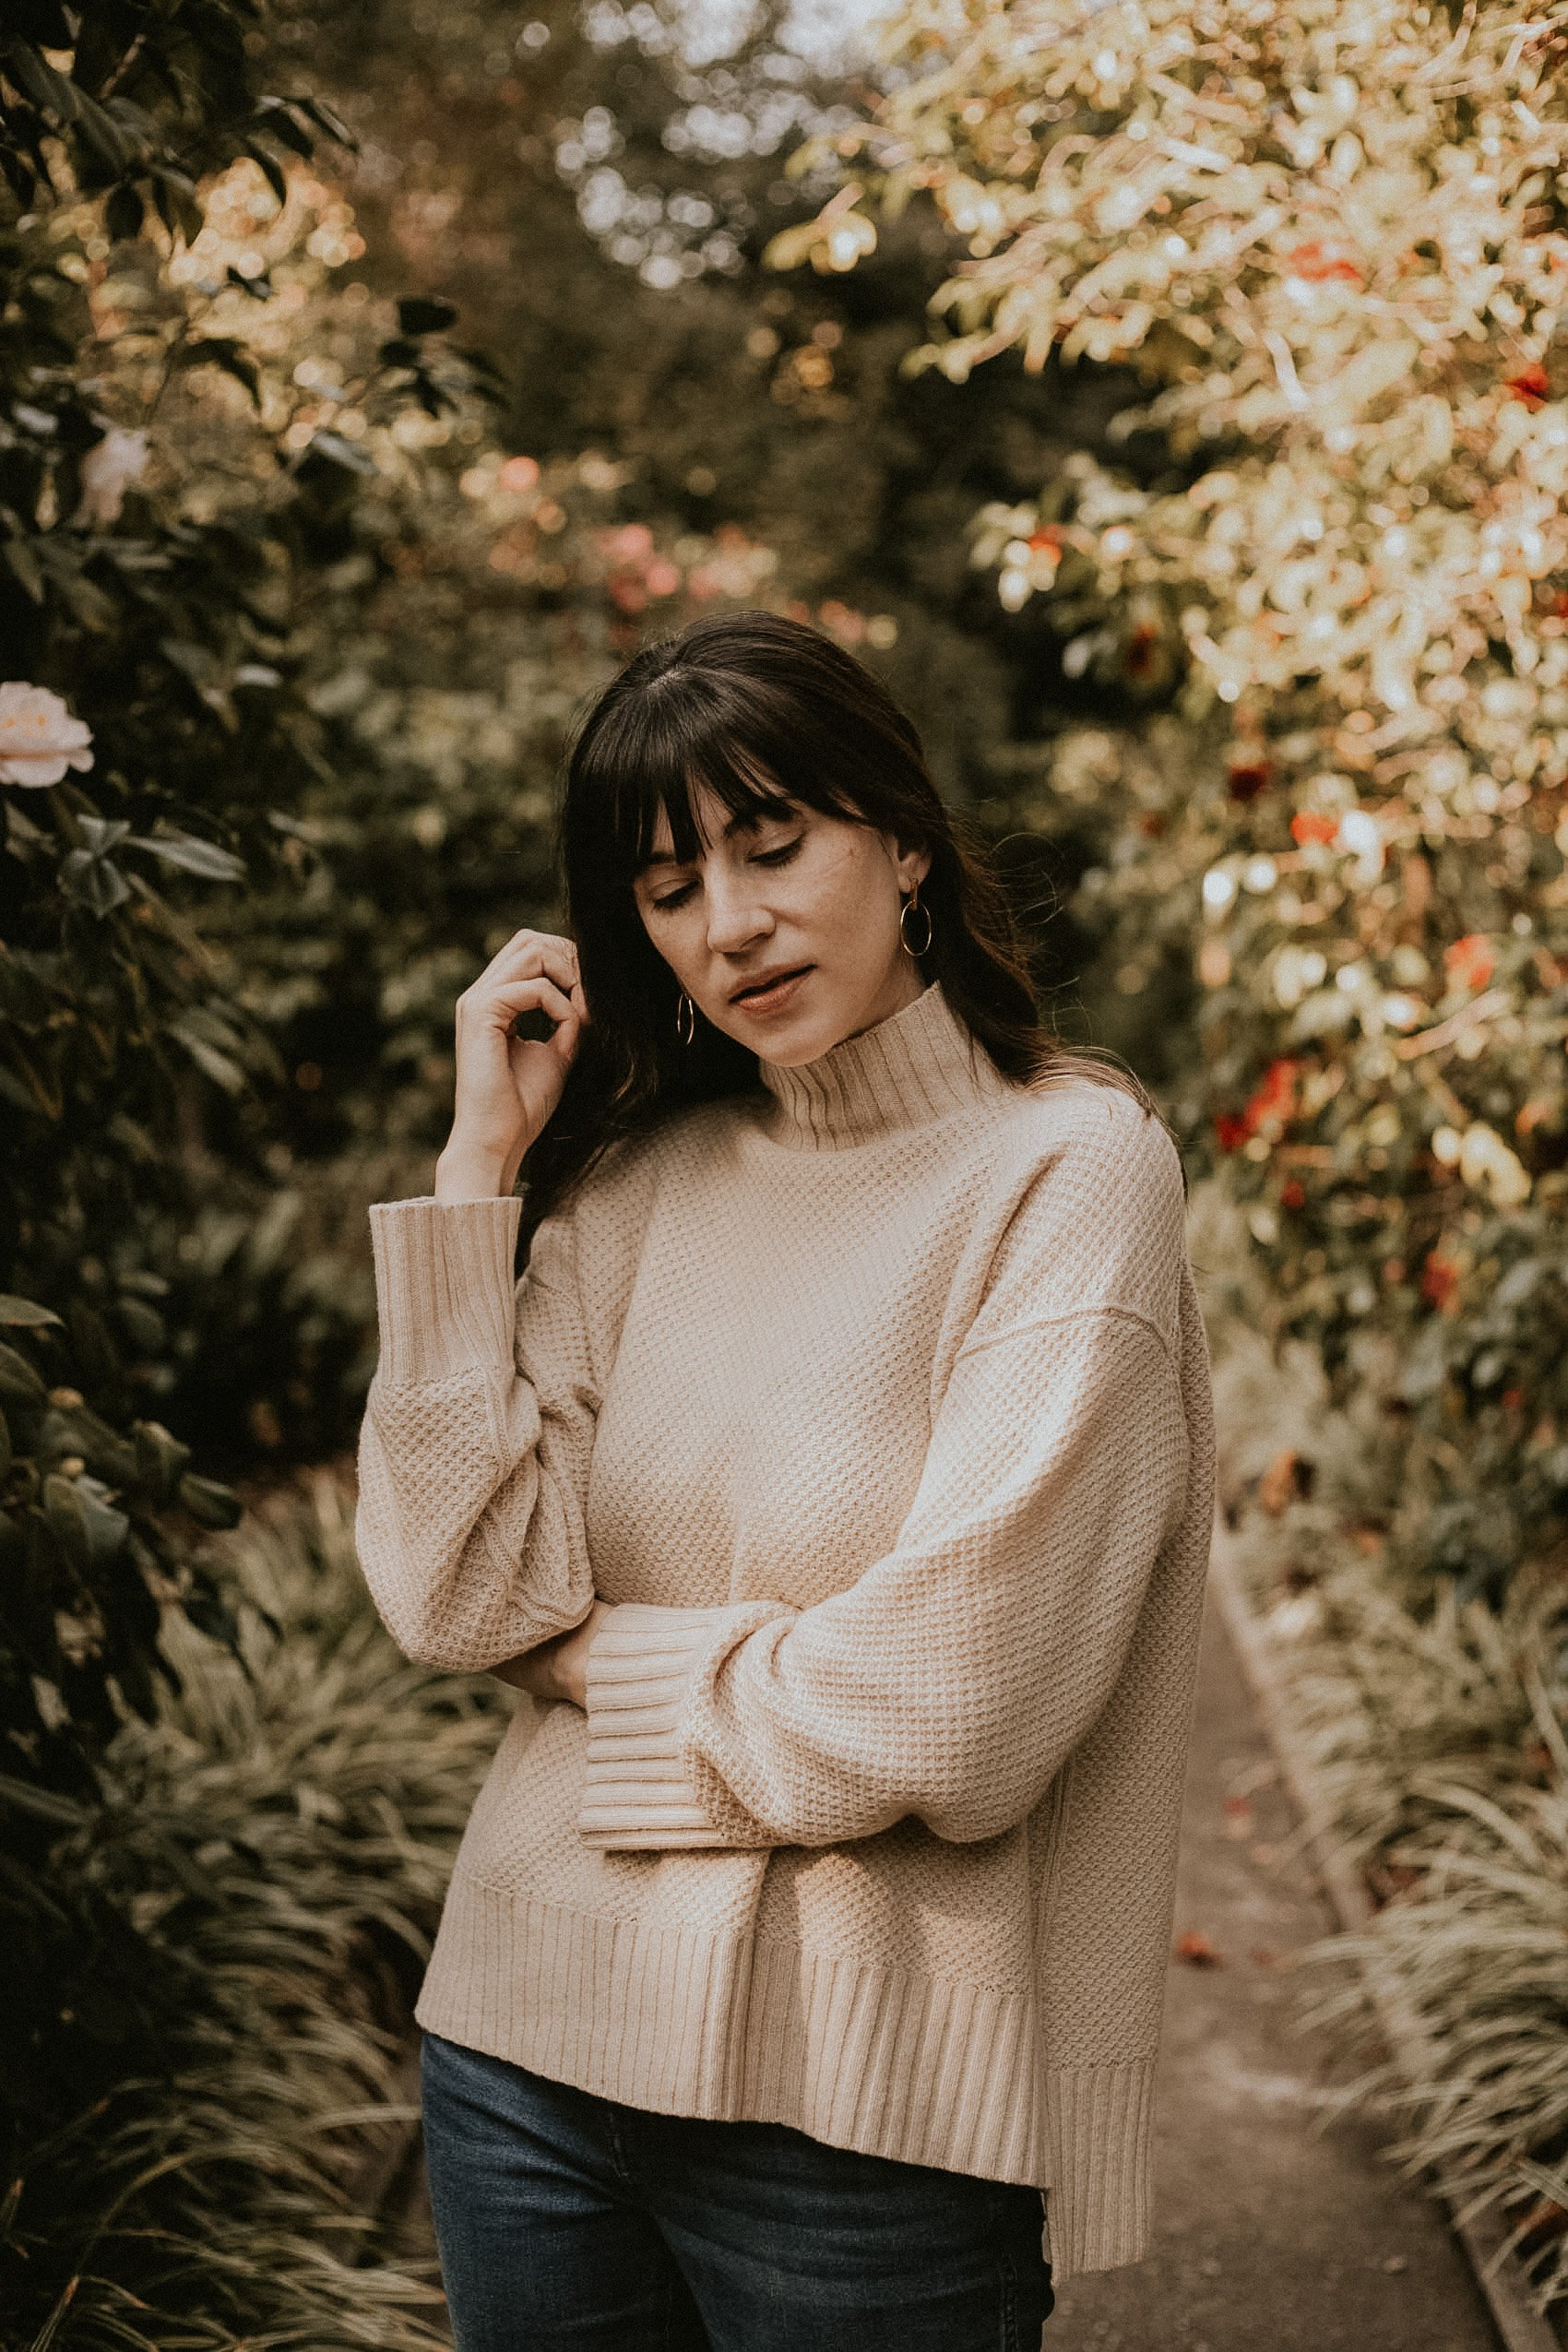 Everlane Renew Cashmere Stroopwafel Sweater with Aurate Jewelry on Los Angeles Fashion Blogger at Huntington Gardens in Pasadena